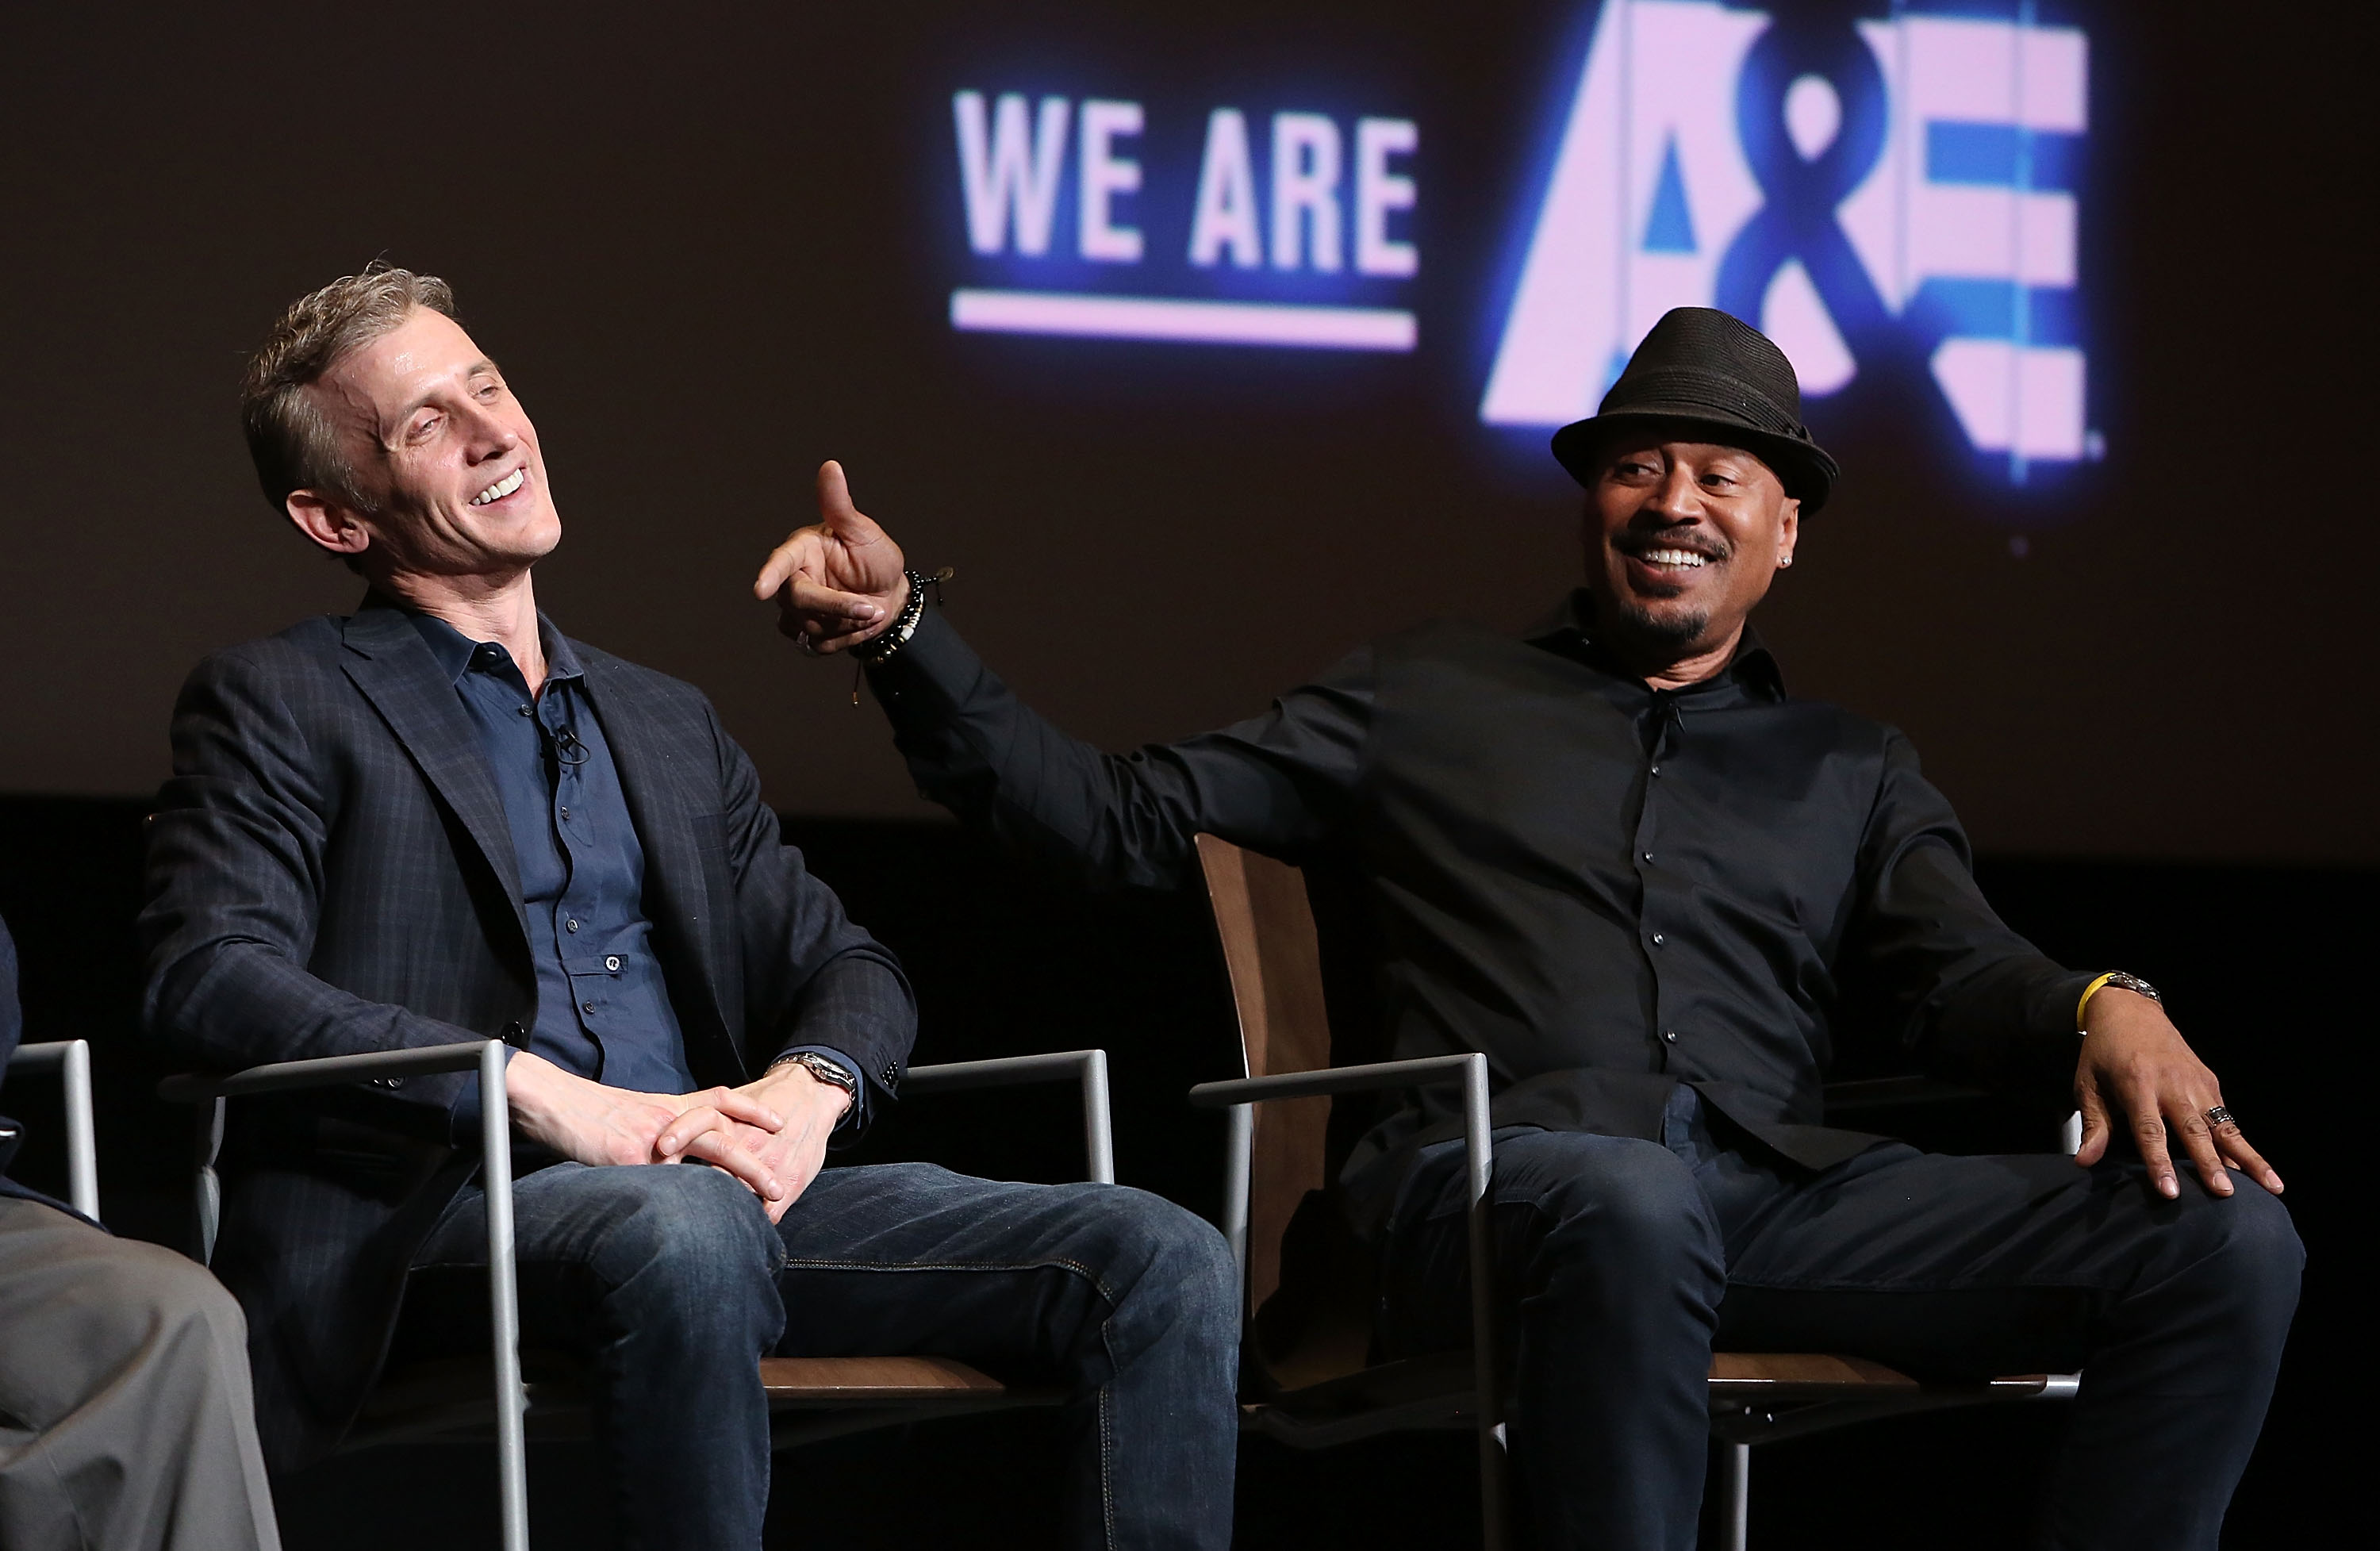 Host Dan Abrams and analyst Tom Morris attend a Live PD Screening at Saban Media Center in 2018 in North Hollywood, California. (Photo: Jesse Grant/Getty Images for A&E Network)